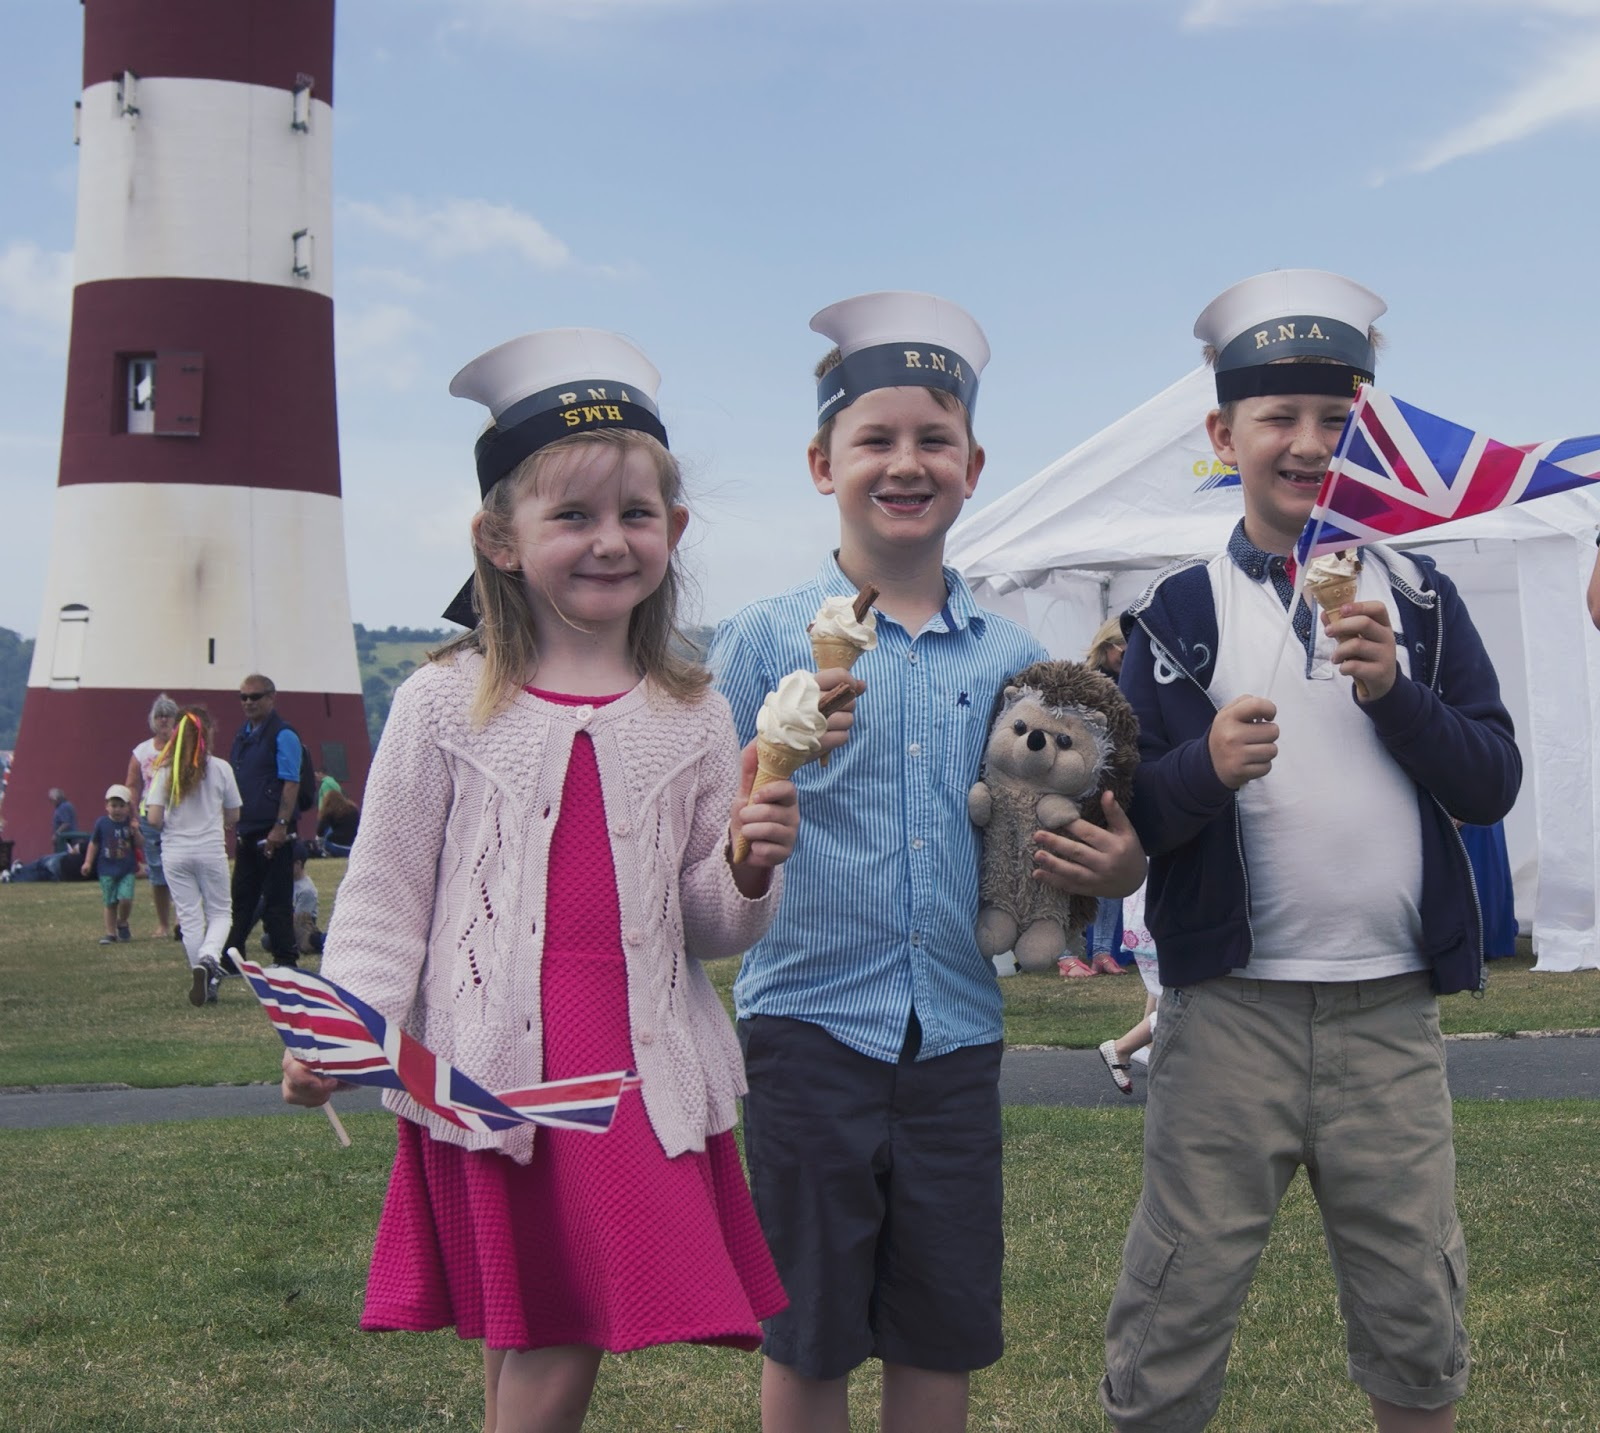 Armed forces day, plymouth, plymouth bloggers, navy, fun, my sunday photo, sunday, harry, alfie, zoella, plymouth hoe, july, devon, military